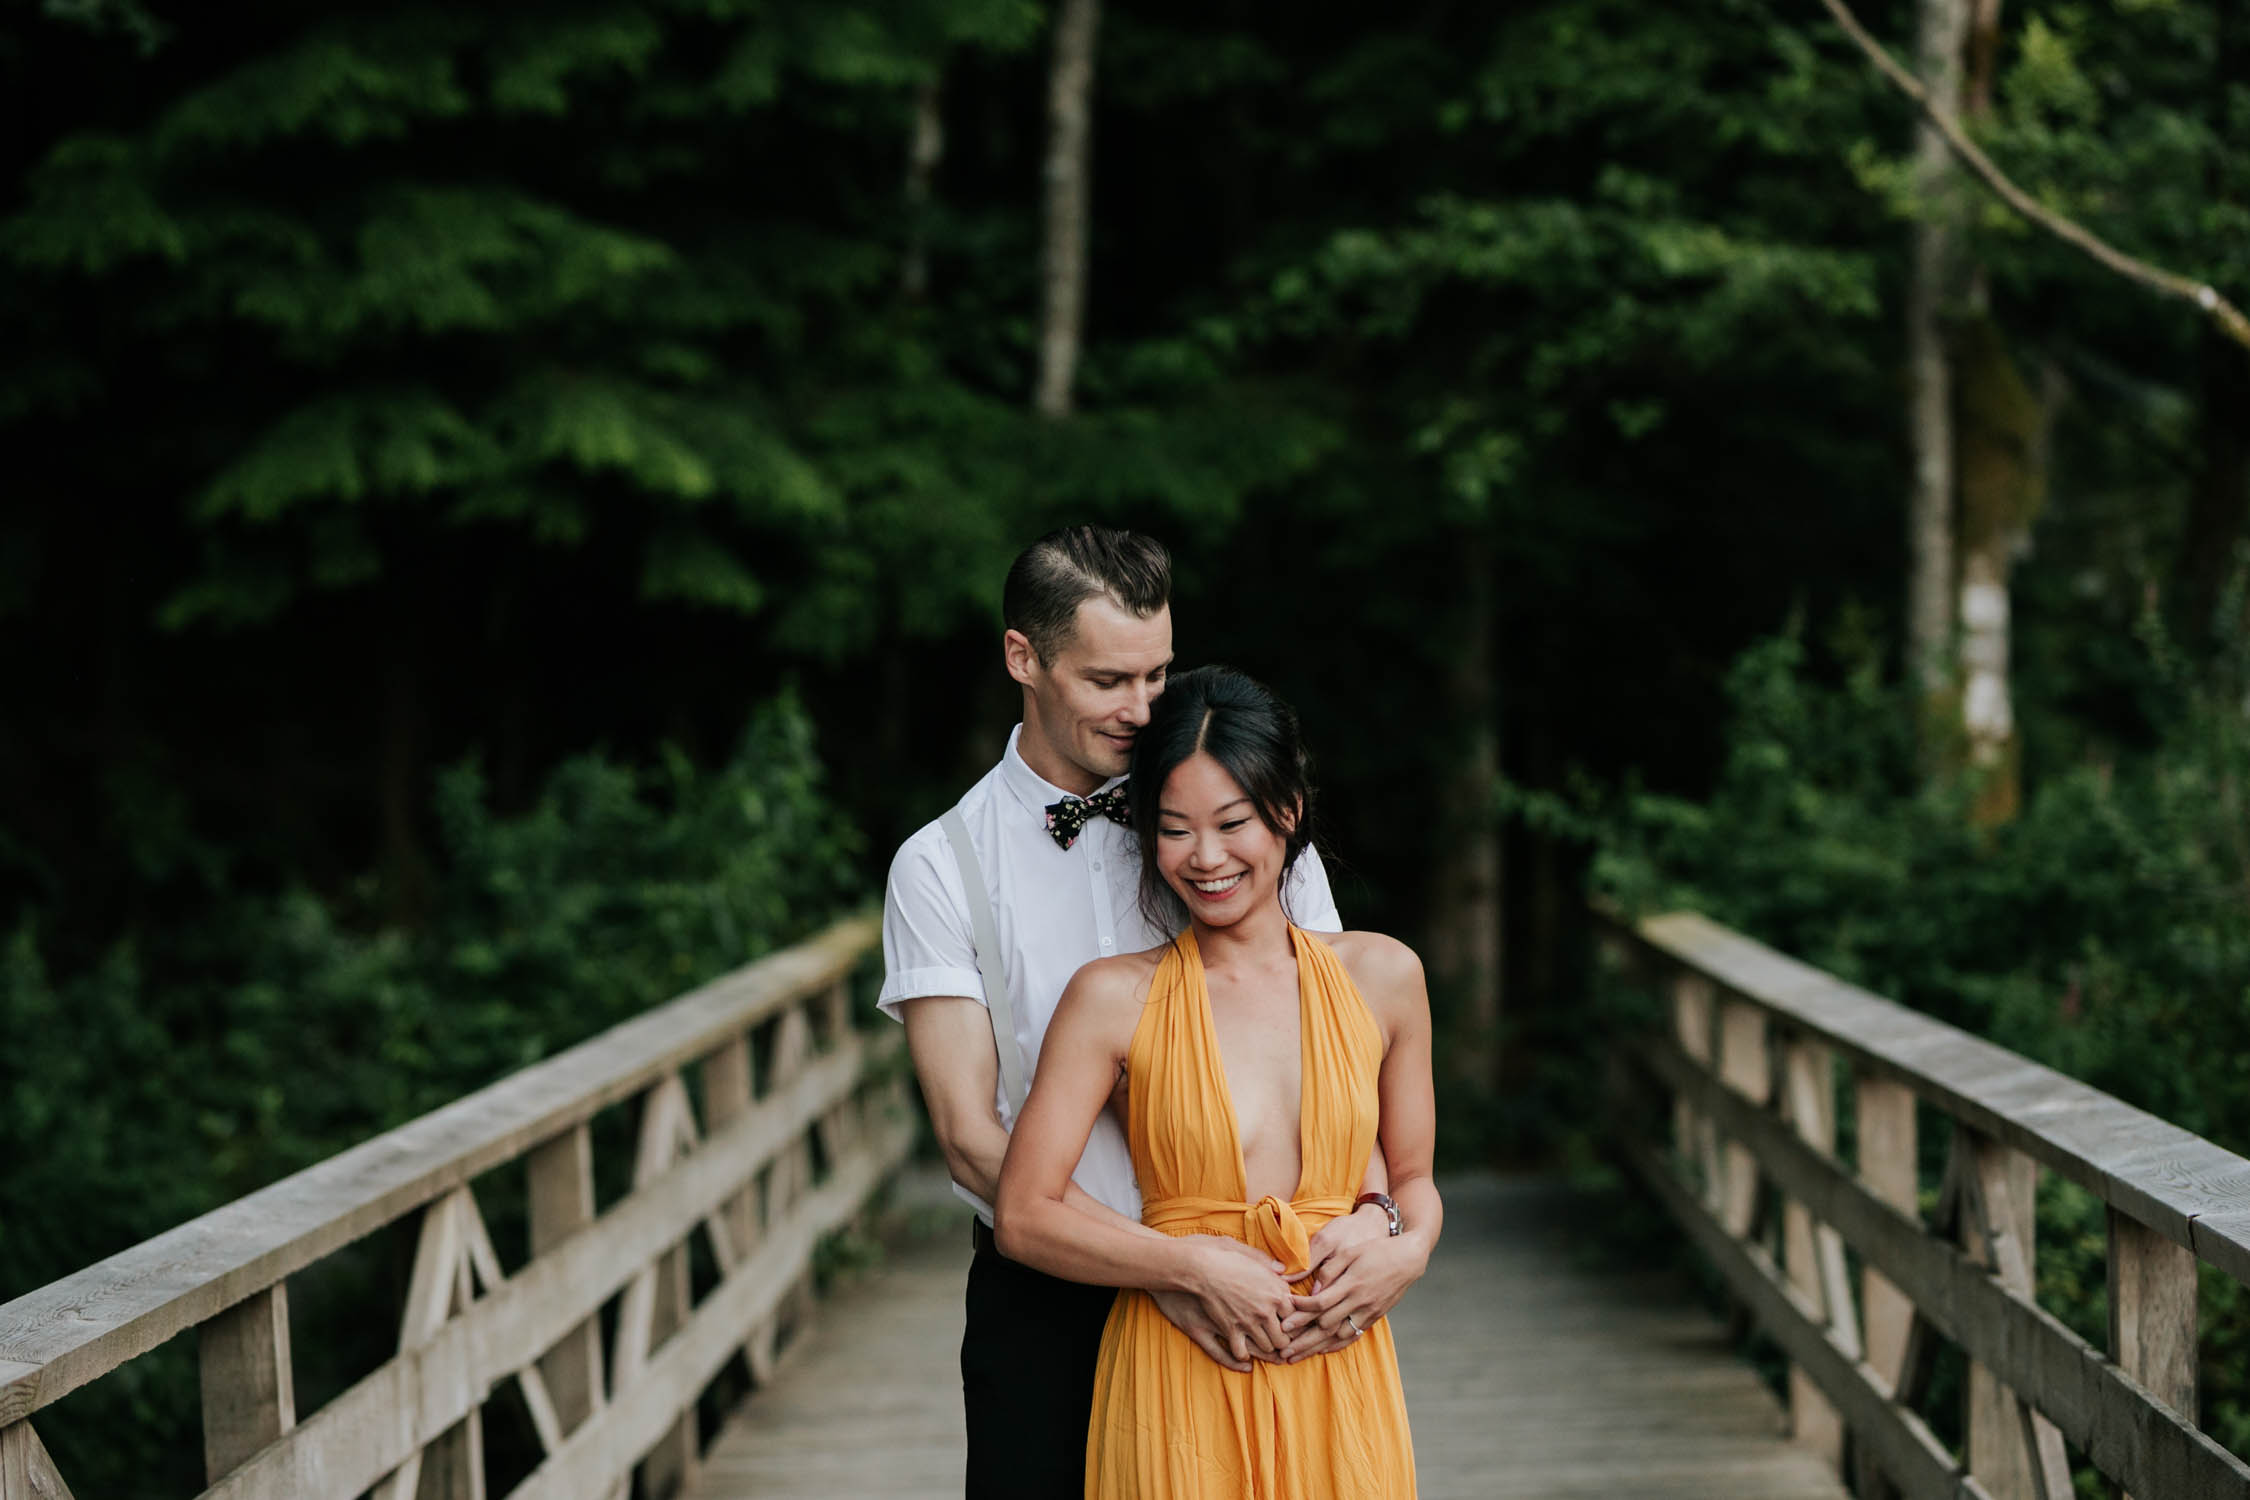 Natural moment captured of engaged couple laughing together on a bridge.